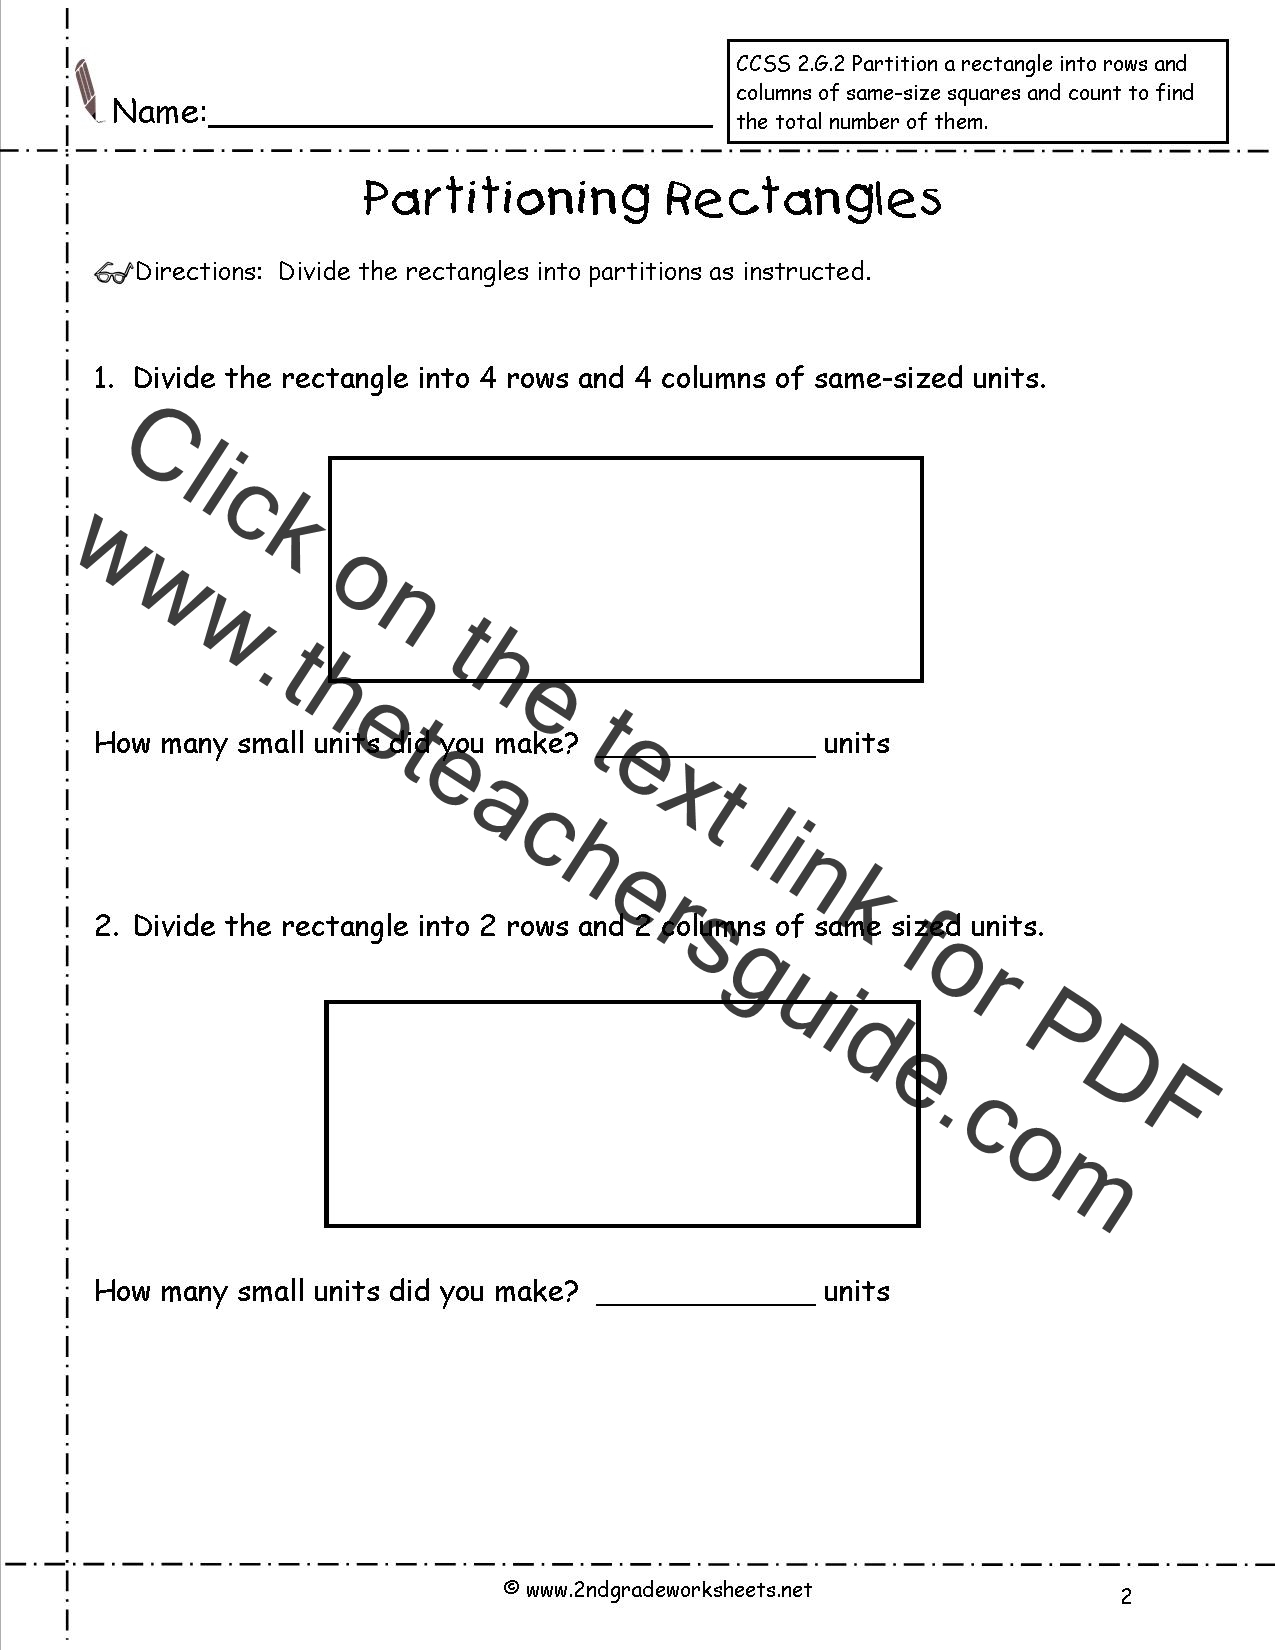 Partition Rectangles Worksheets Ccss 2 G 2